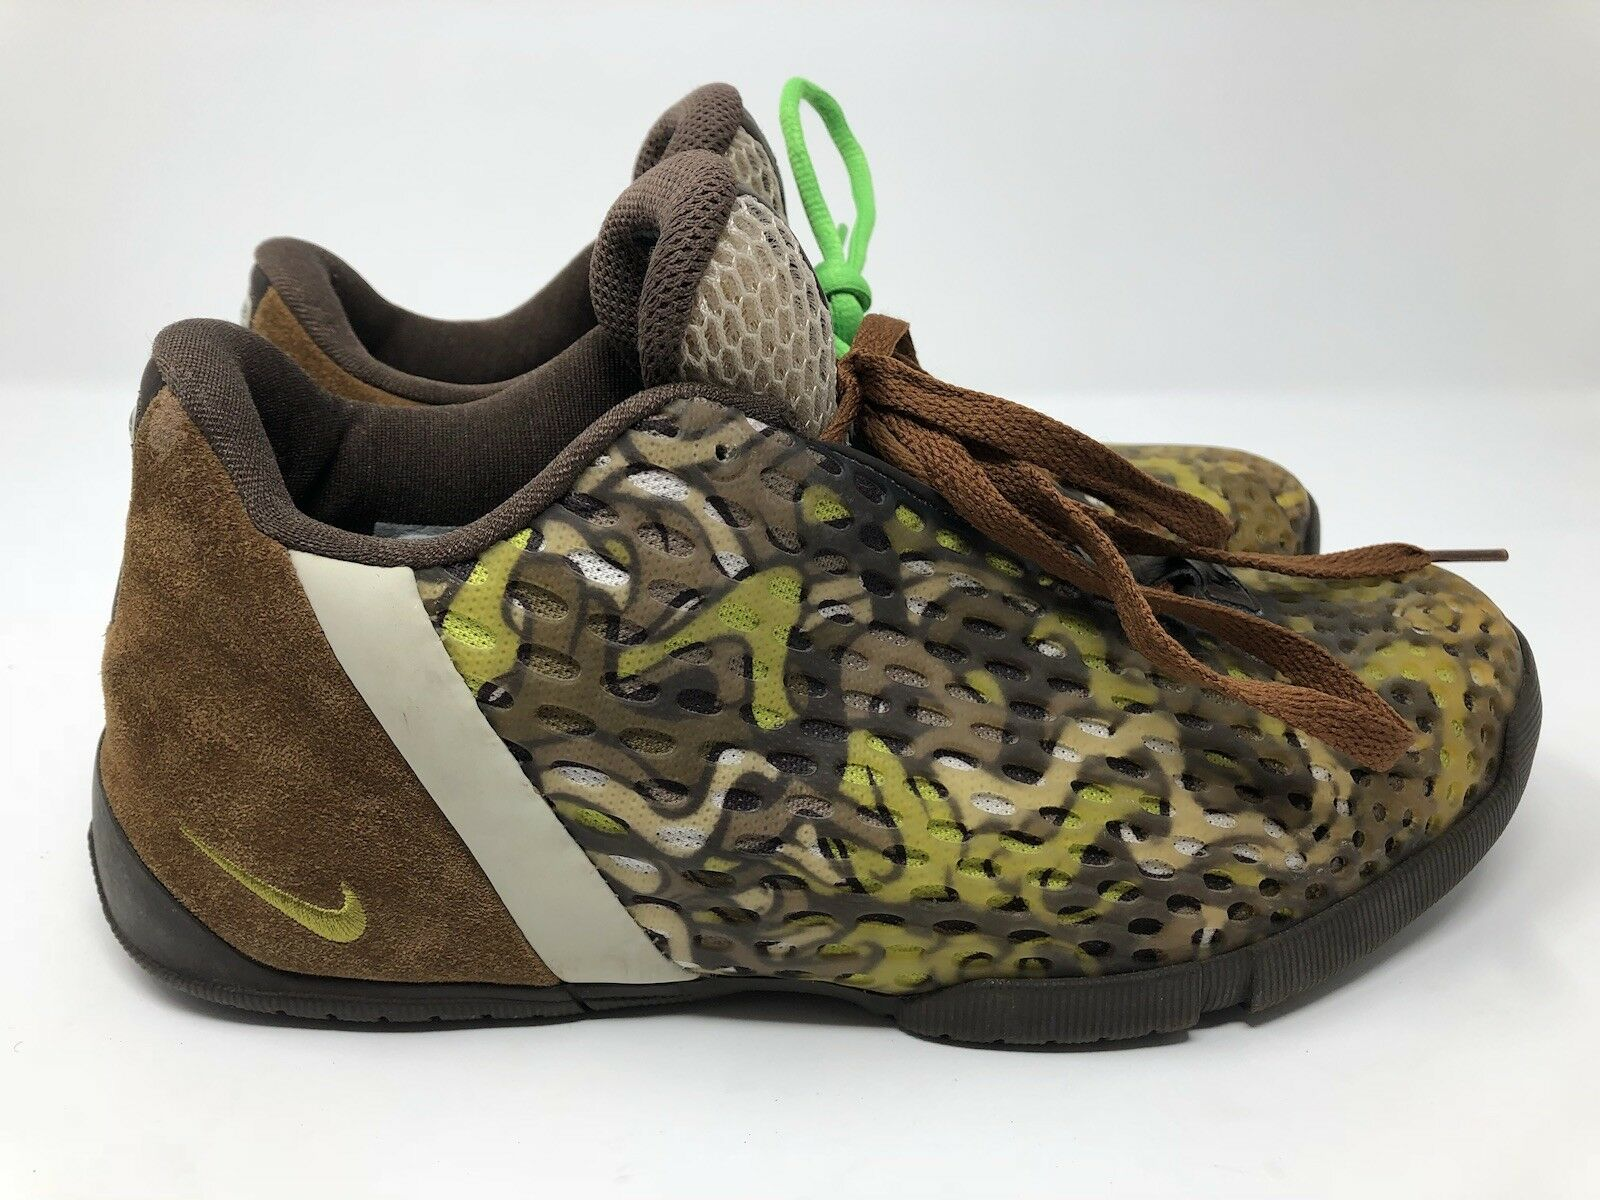 c5ff251f23fe7 Nike Mens Vintage zm2 Brown Brown Brown Green Camo Size 9.5 US 8.5 UK 7ff708